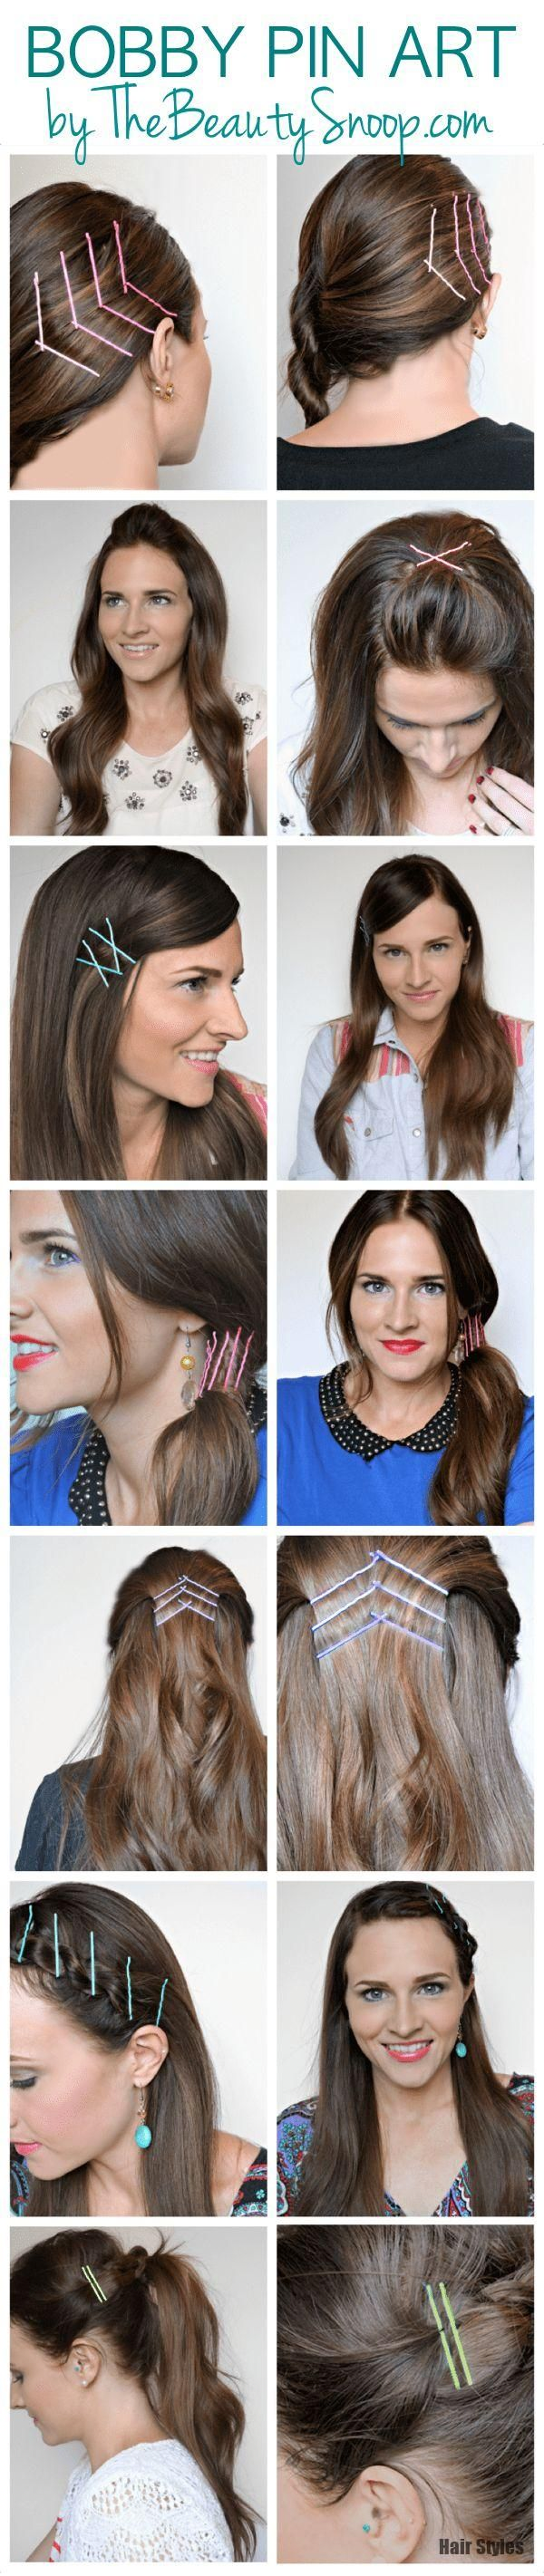 New 18 Life-changing ways to use bobby pins for a more awesome look …